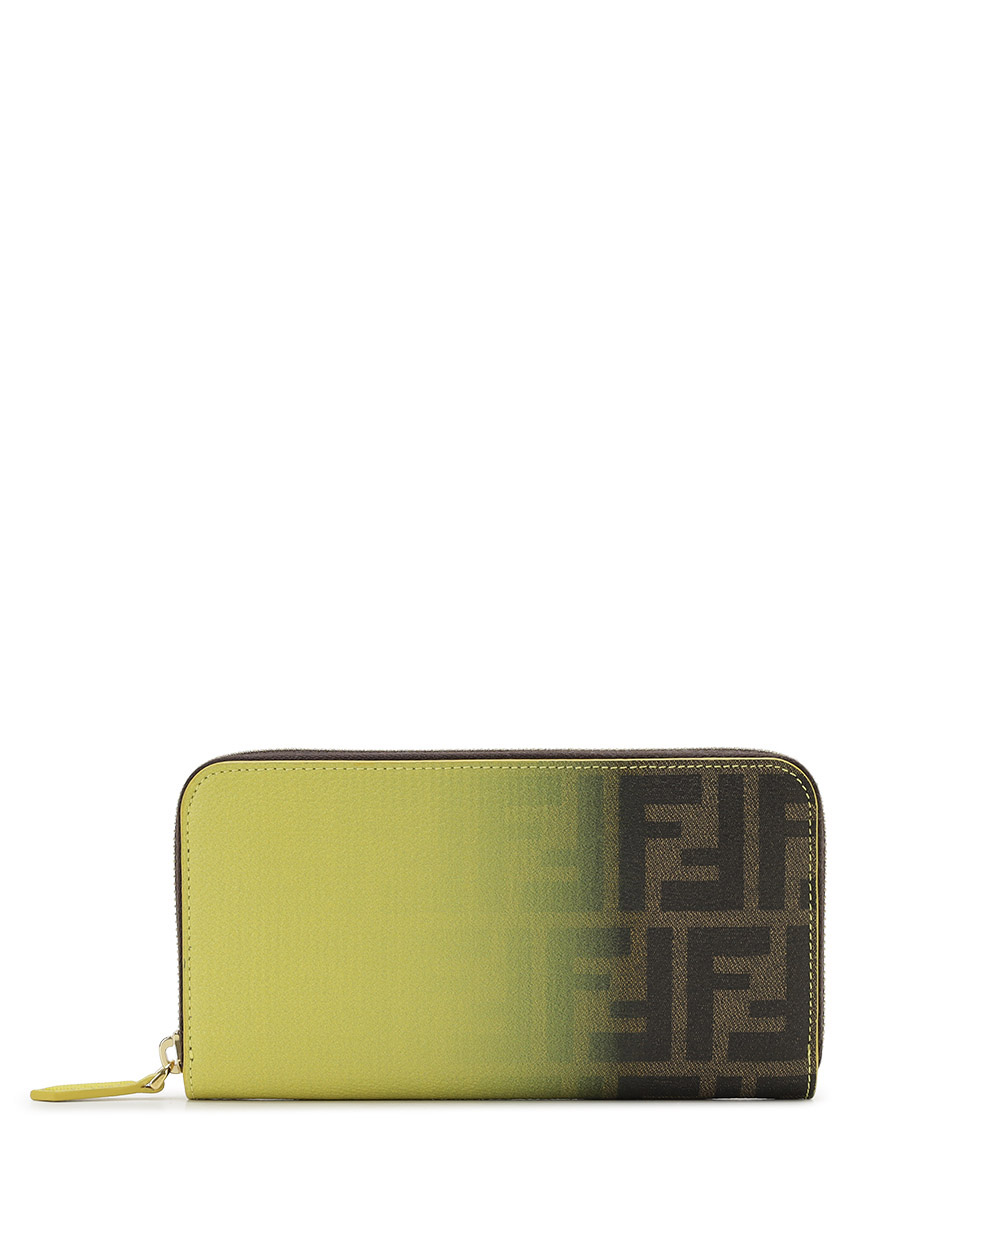 PVC Gradient Long Wallet